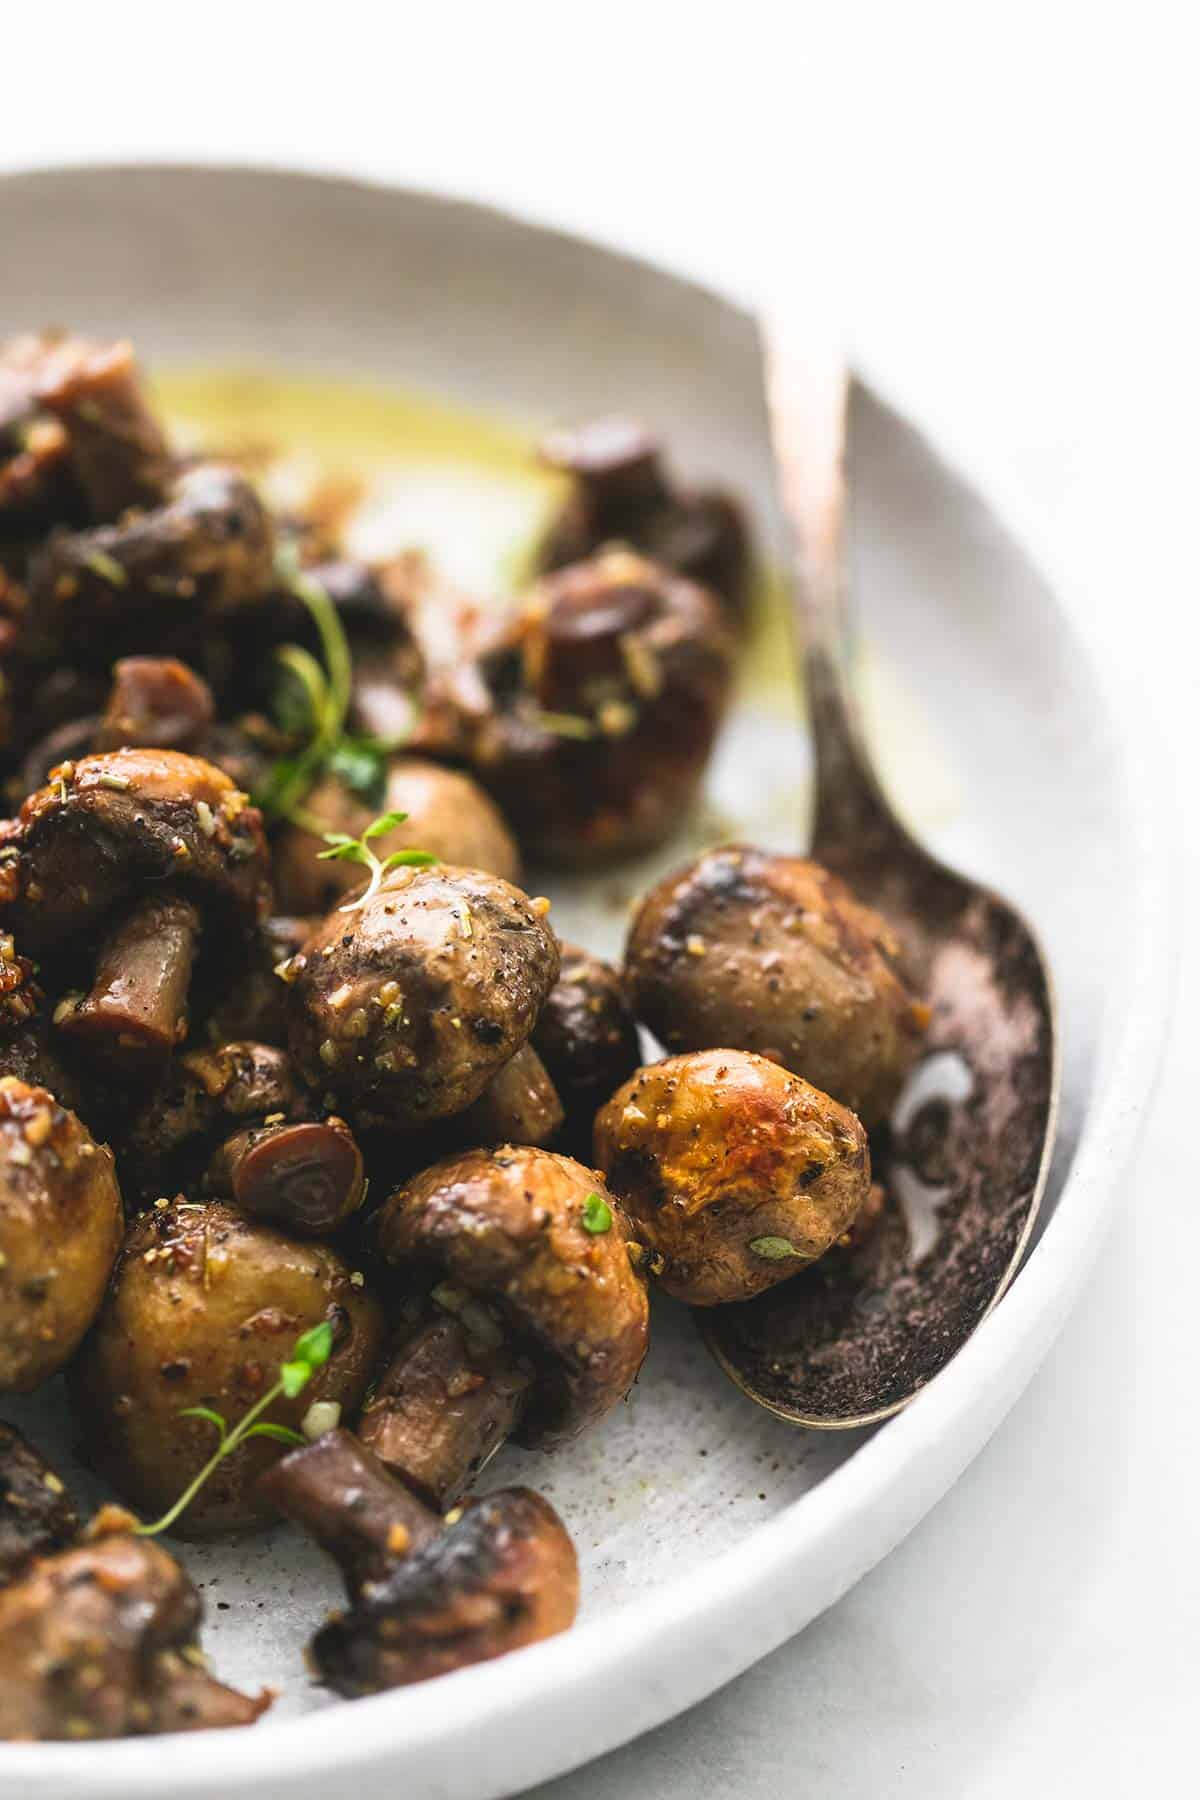 Sauteed Garlic Butter Mushrooms | lecremedelacrumb.com